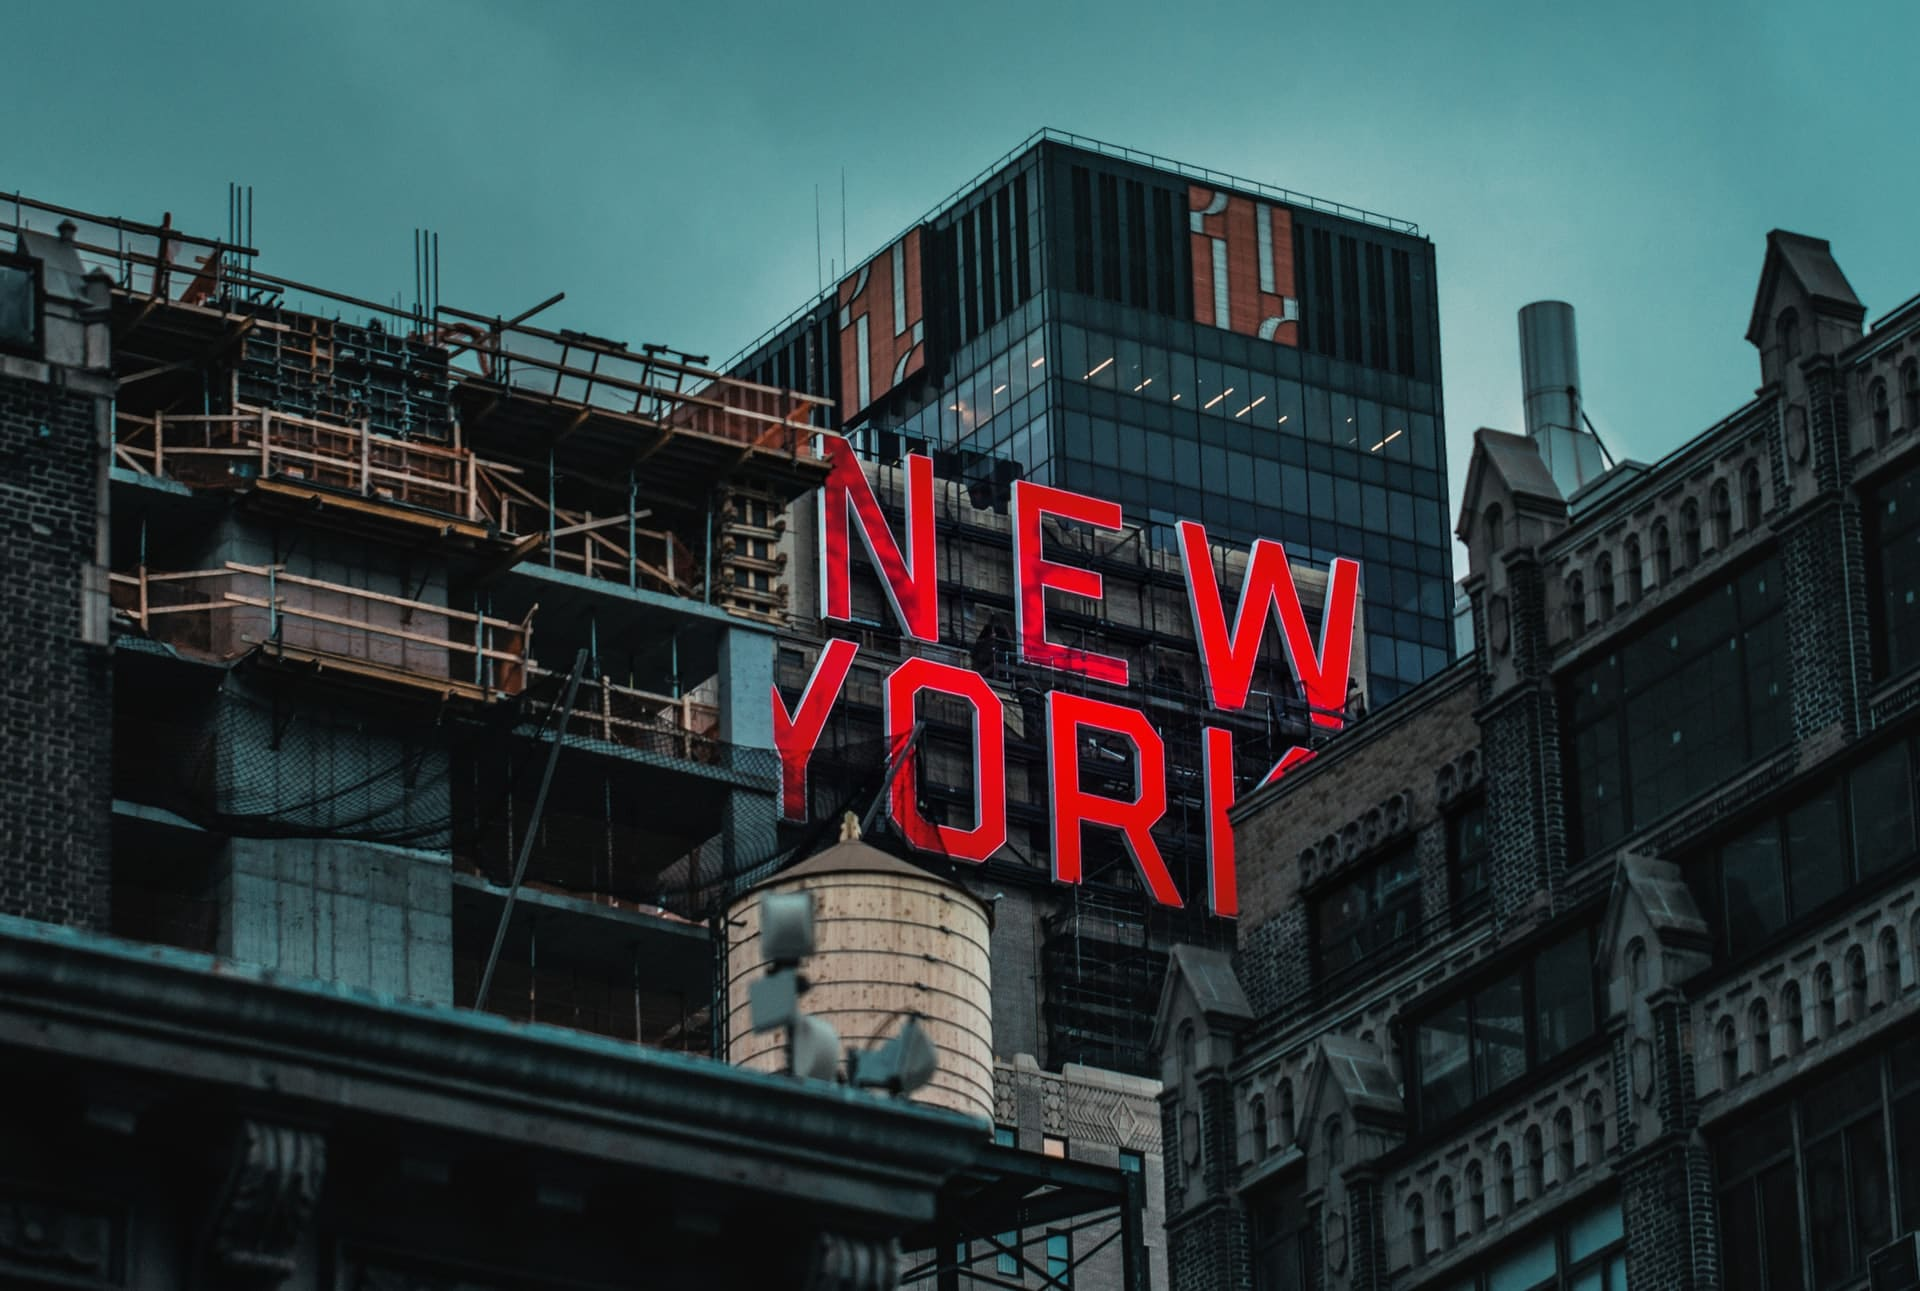 Construction Site Dangers During the Pandemic In New York